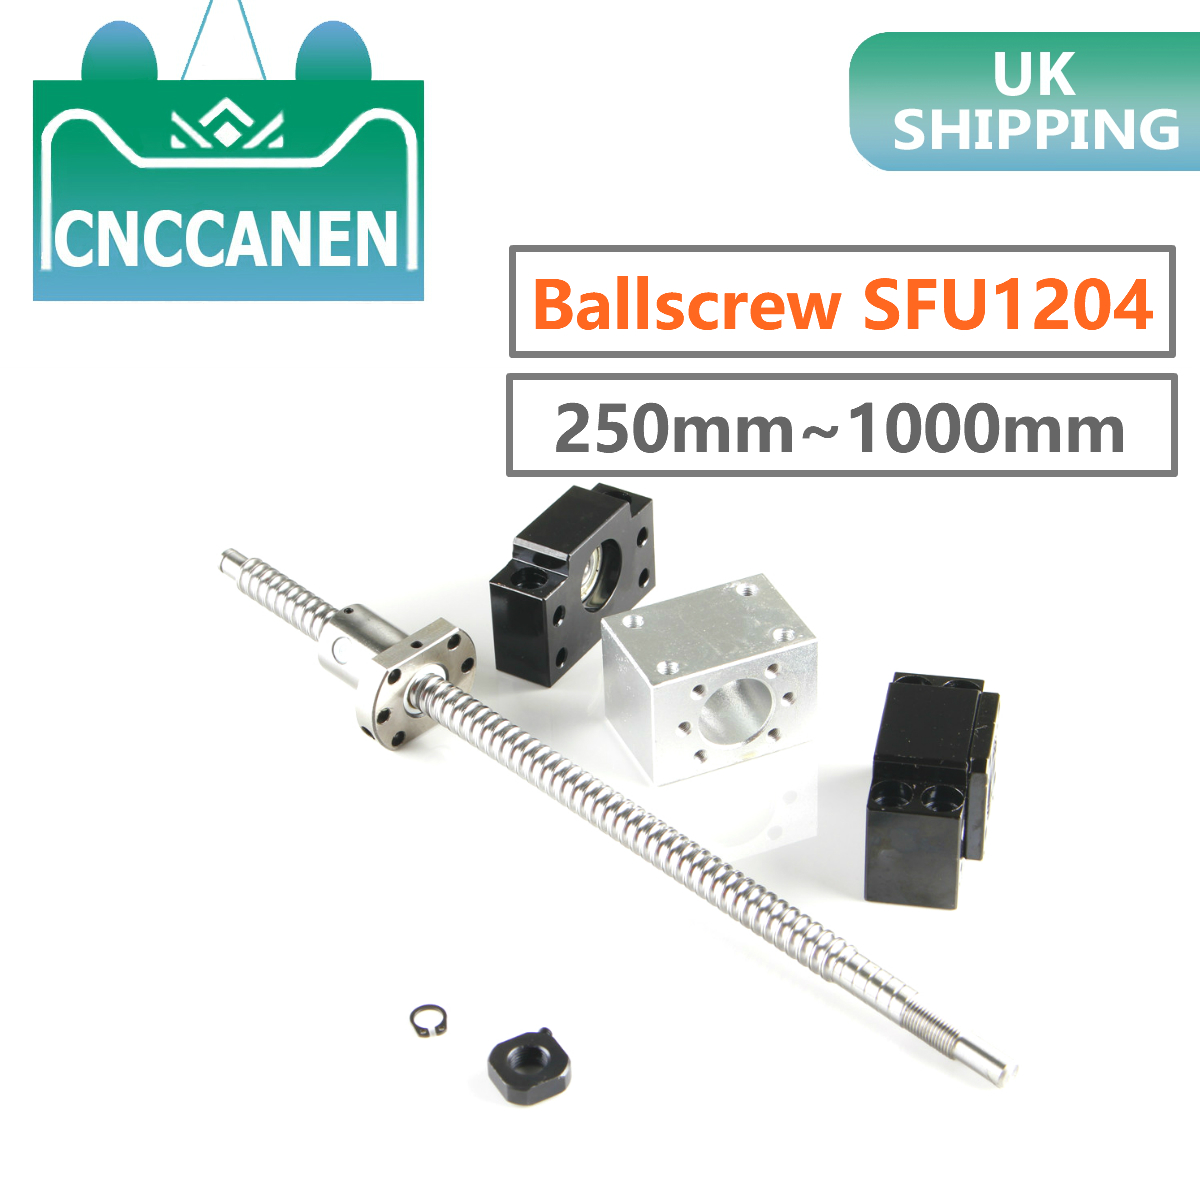 Ballscrew SFU1204-250 300mm 350 400 450 500 550 600 800 1000mm End Machined With BF/BK10 End Support & Ballnut Housing